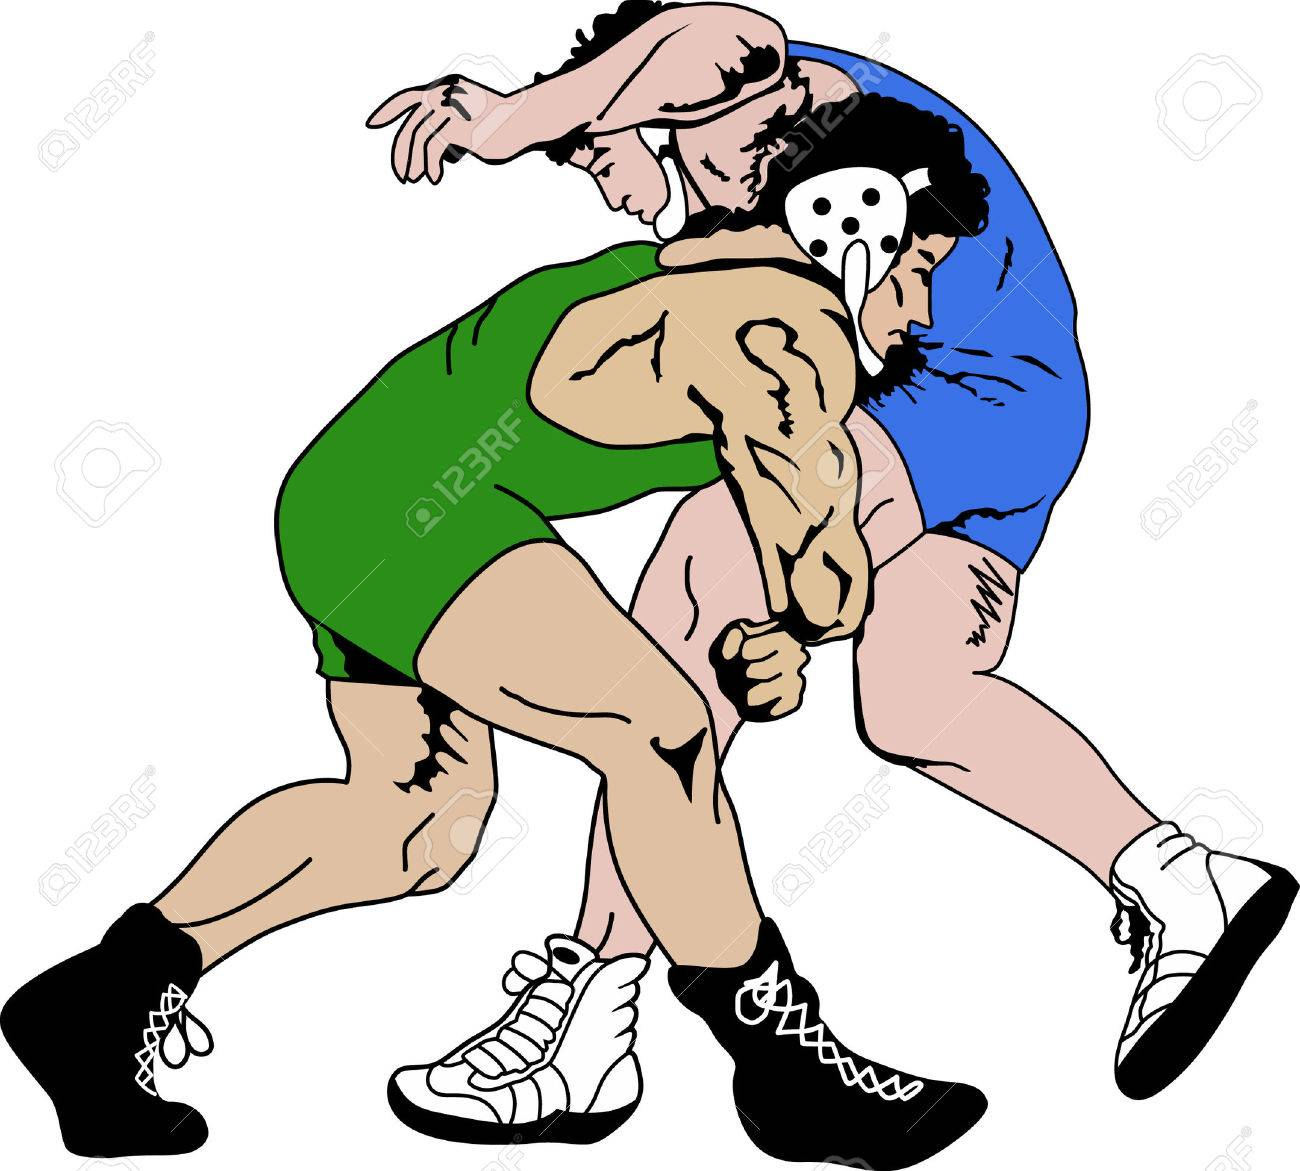 Wrestling is a very active sport taking years to master. This is a wonderful design they will love it. - 45026002